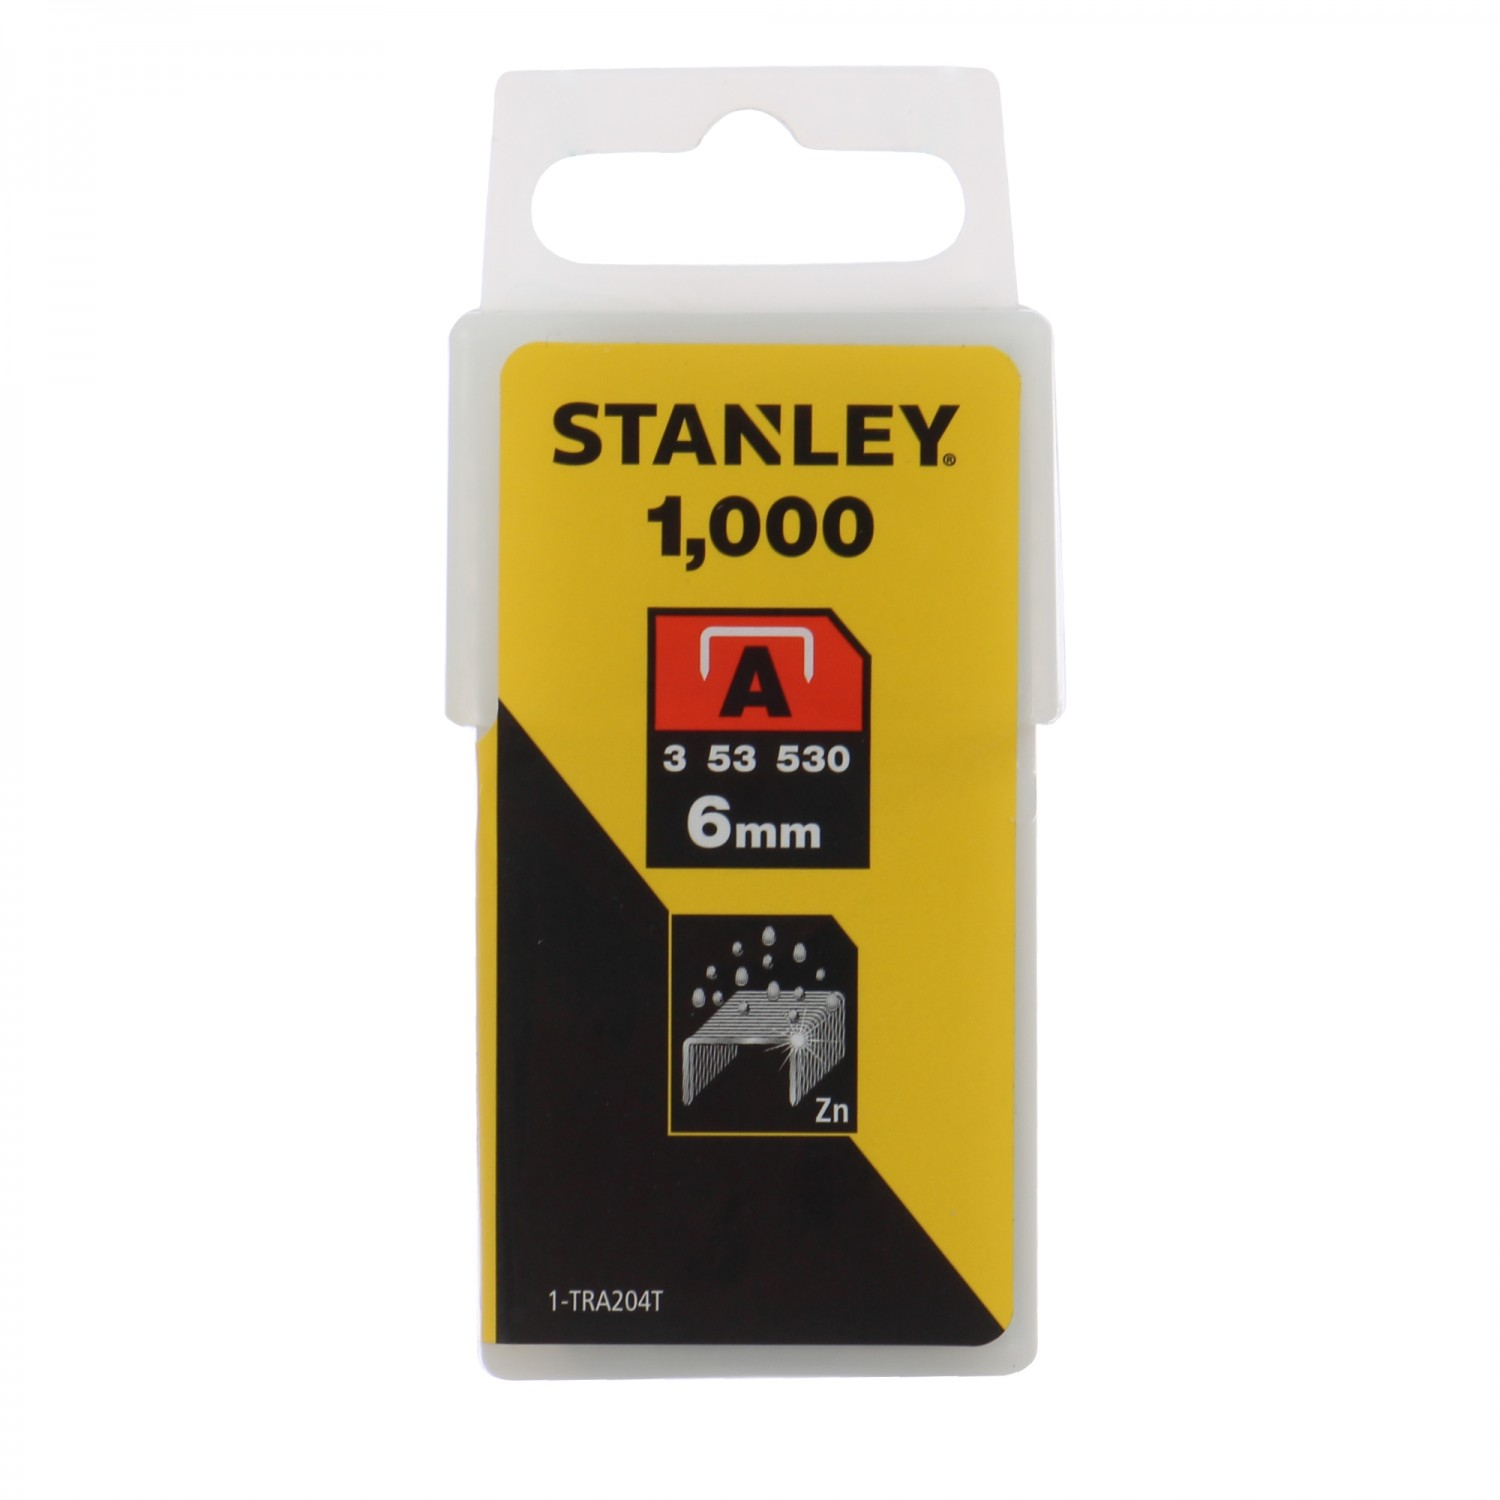 Capse tip A, Stanley, 6 mm, set 1000 bucati